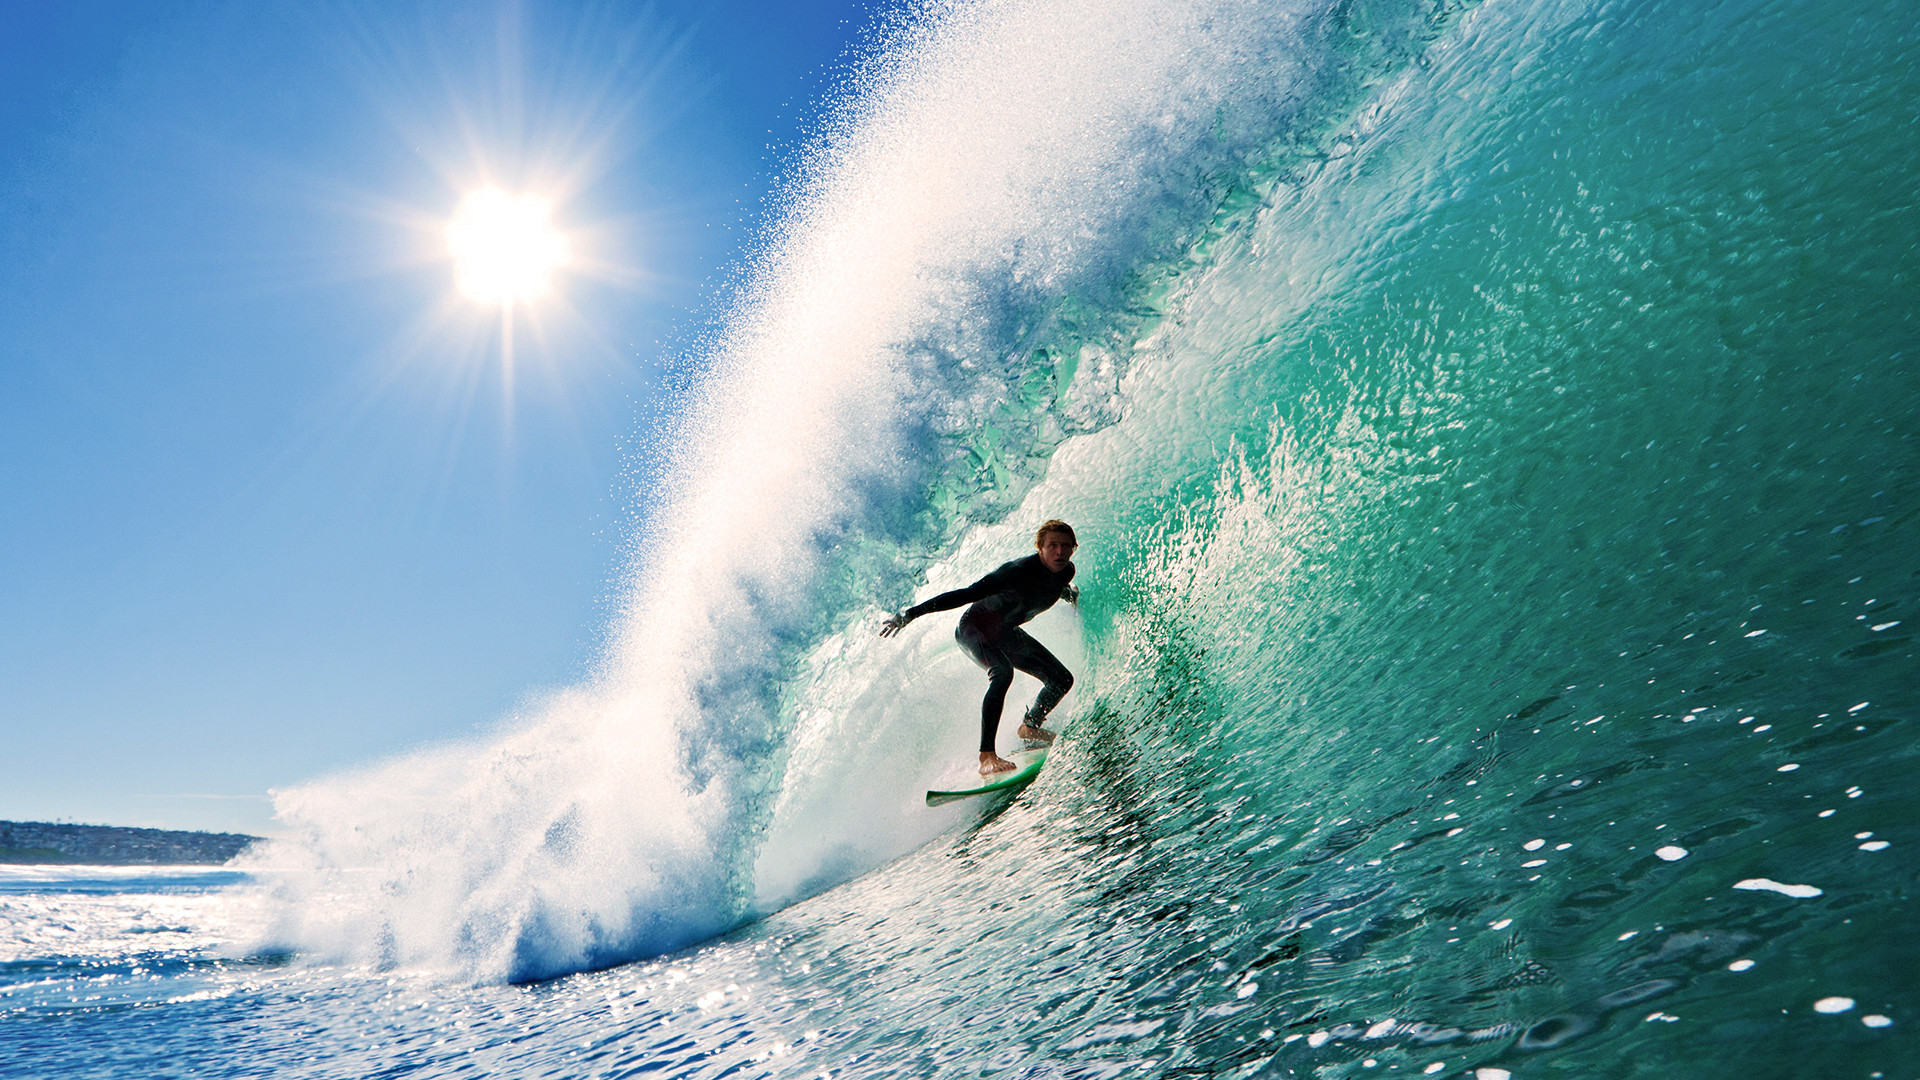 Surfing Computer Wallpapers, Desktop Backgrounds | | ID .